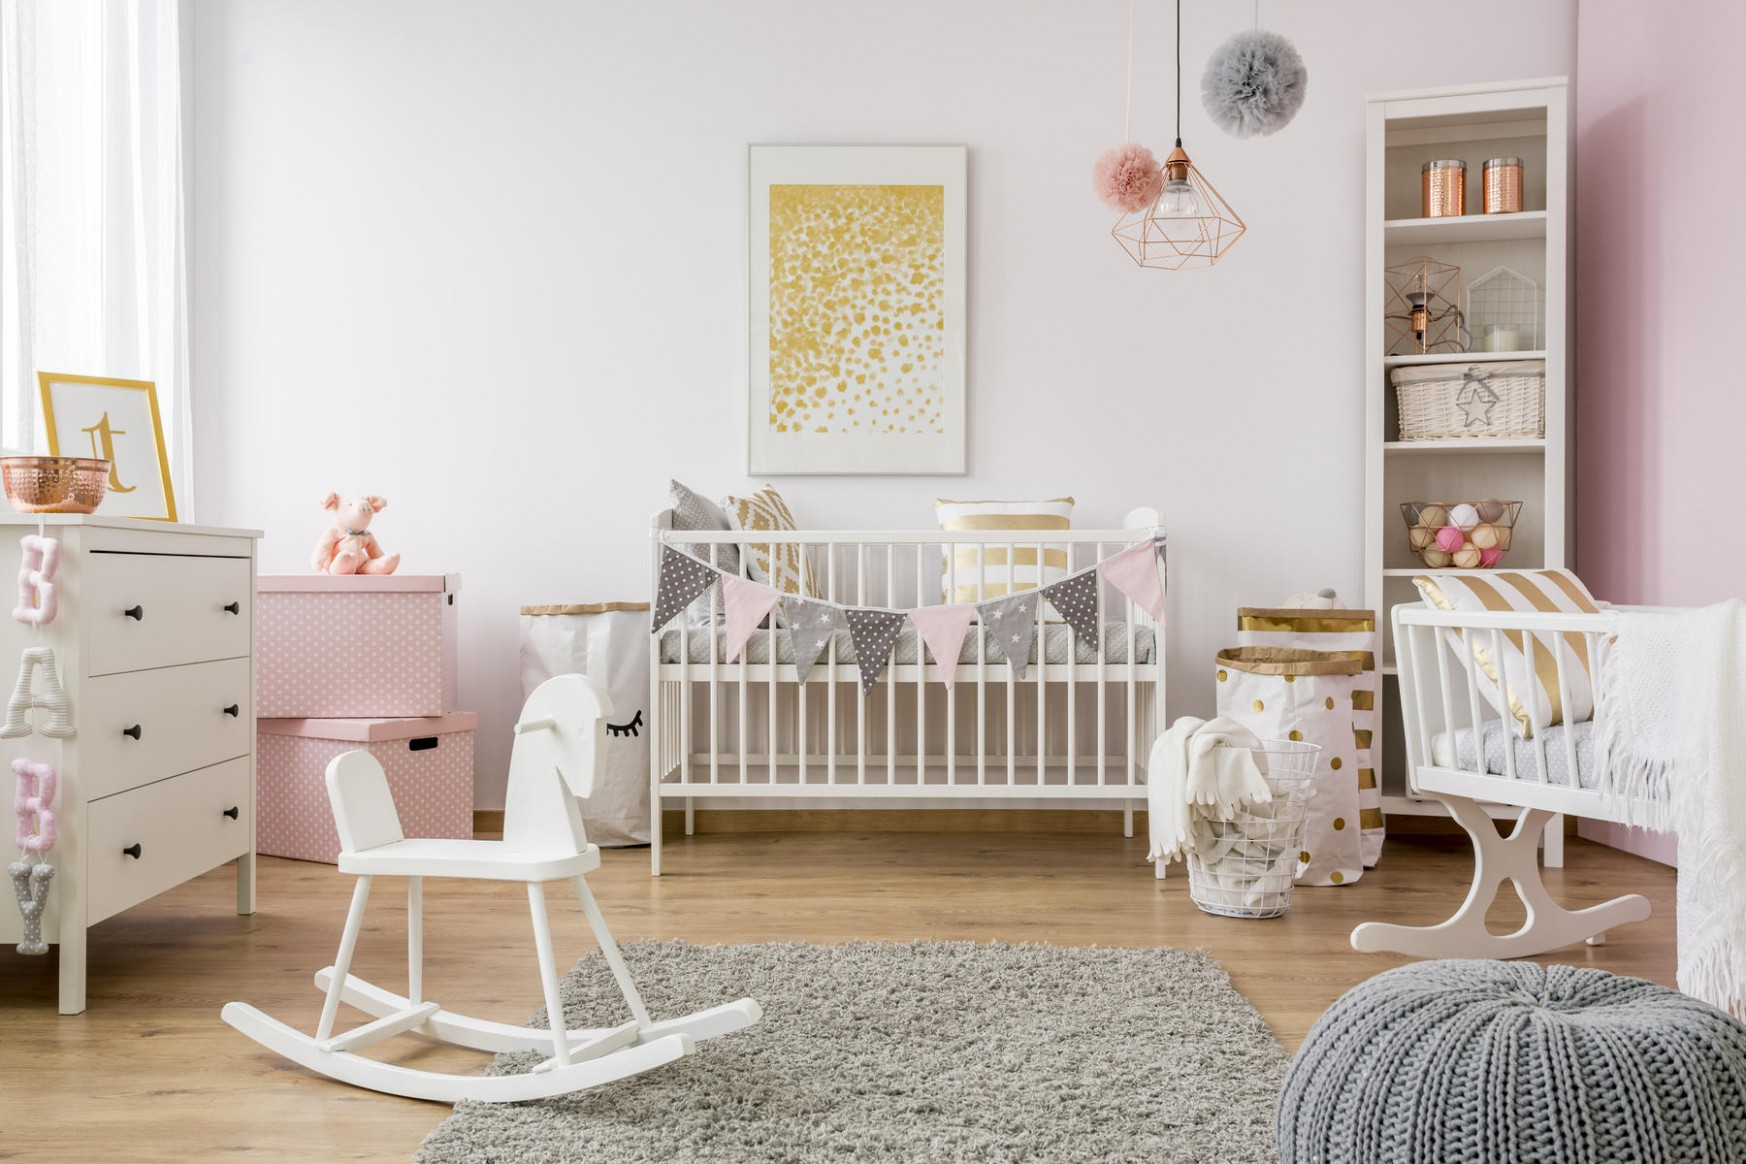 Baby Nursery: Design Ideas, Furniture & Cribs  Parents - Baby Room Furniture